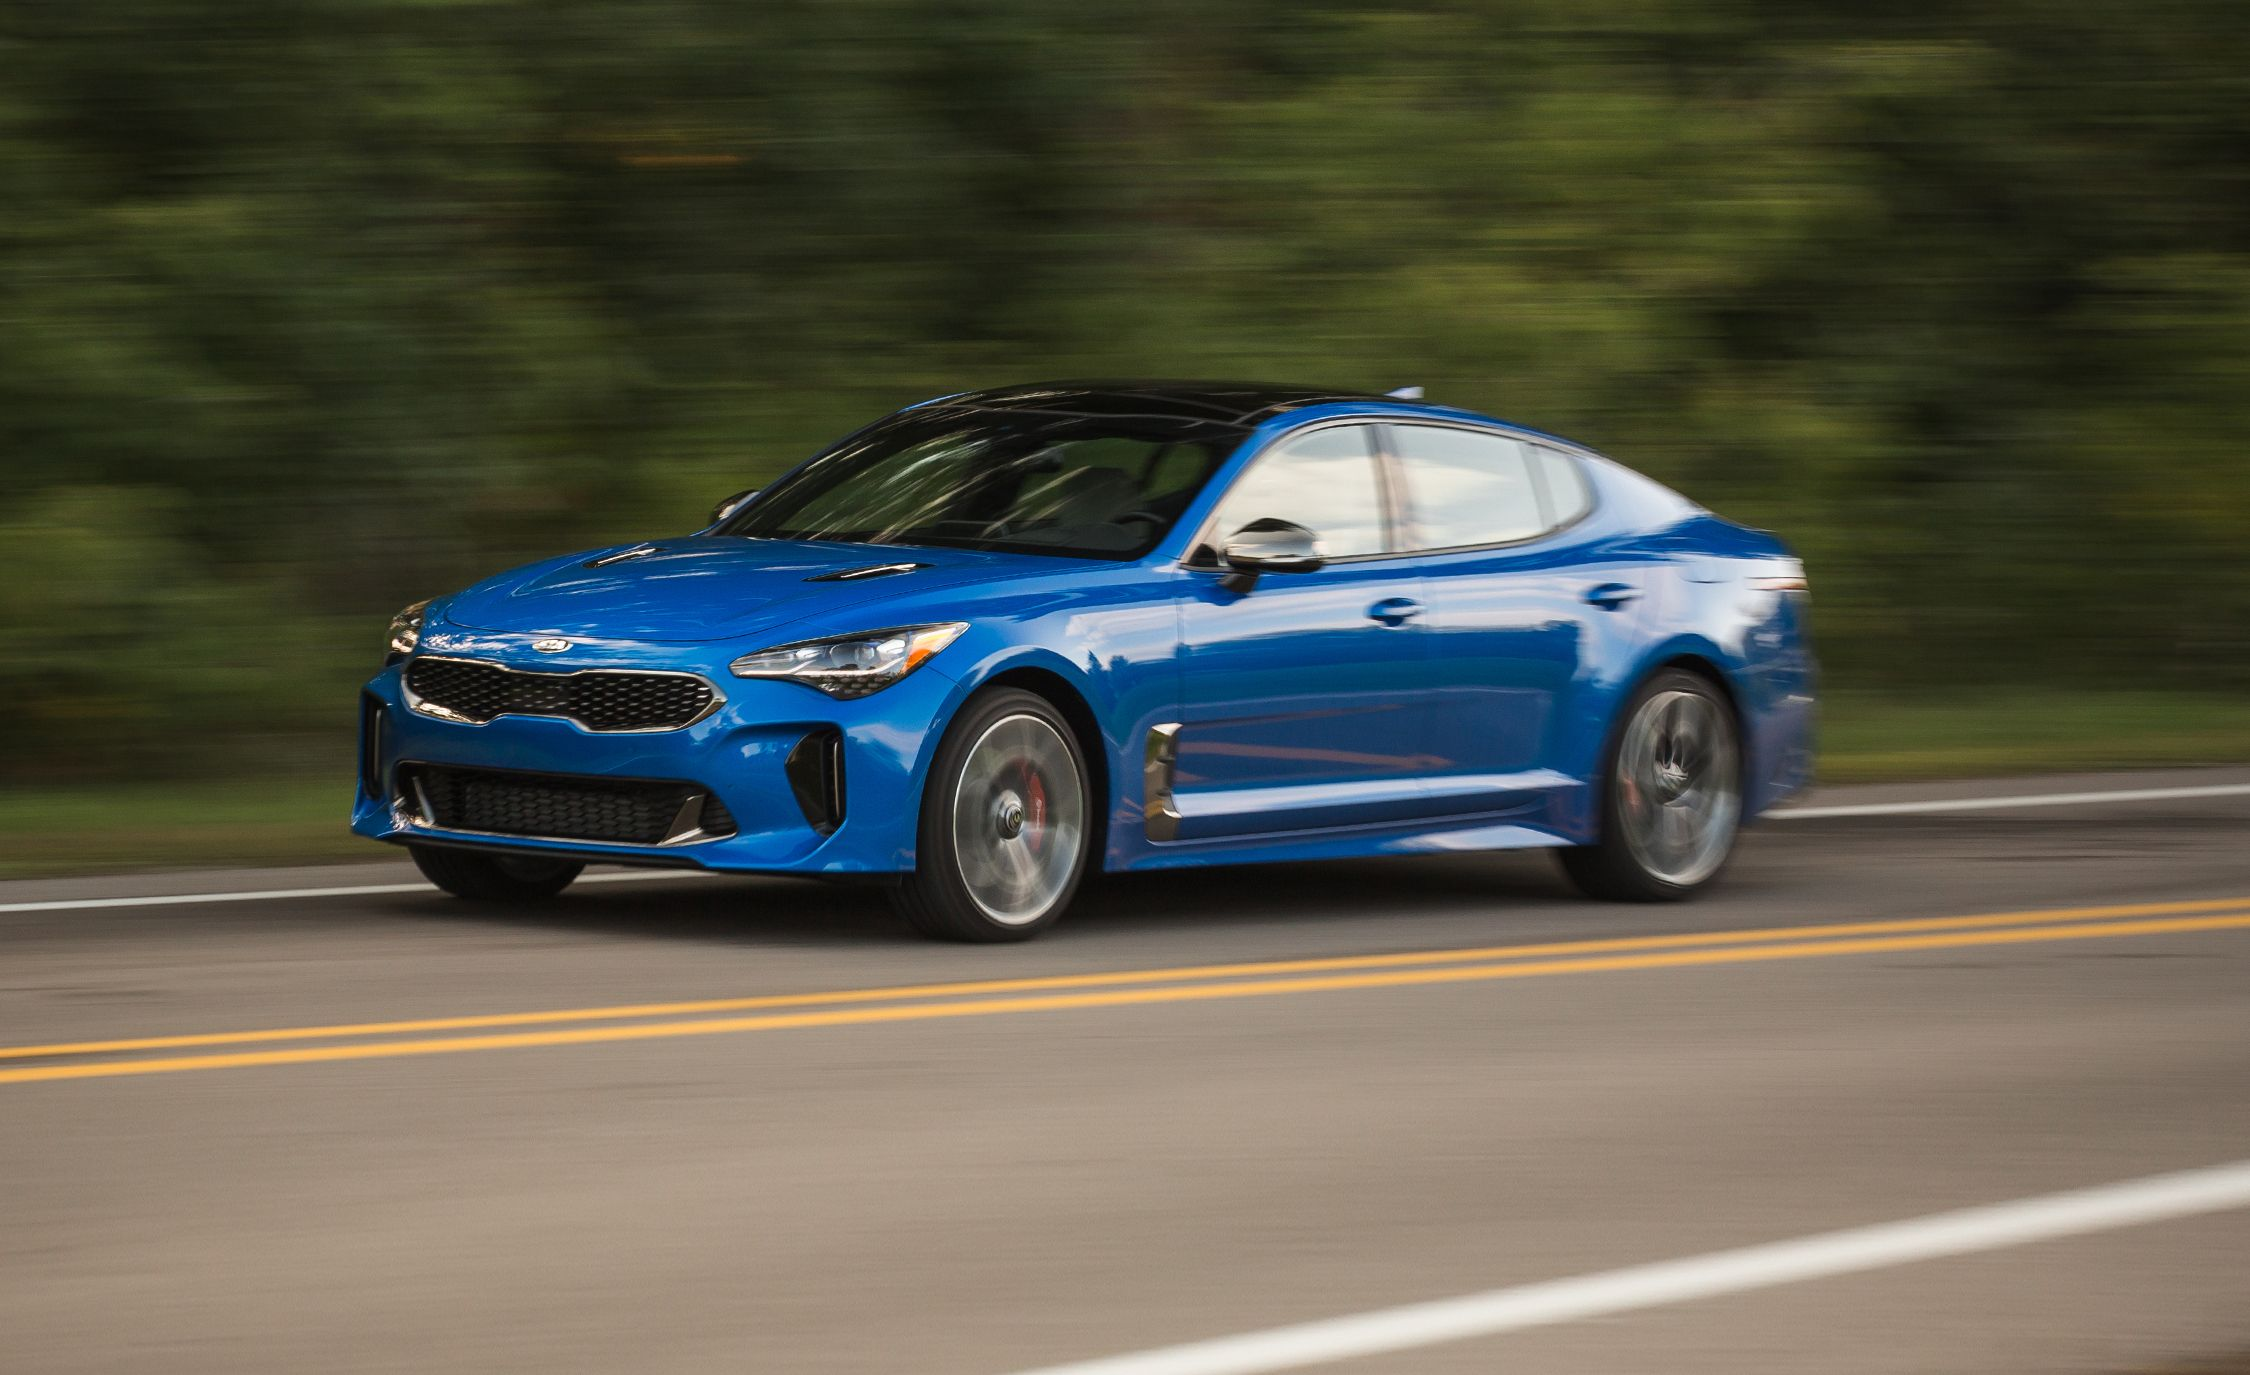 2018 Kia Stinger Gt 3 3t Awd Test Review Car And Driver